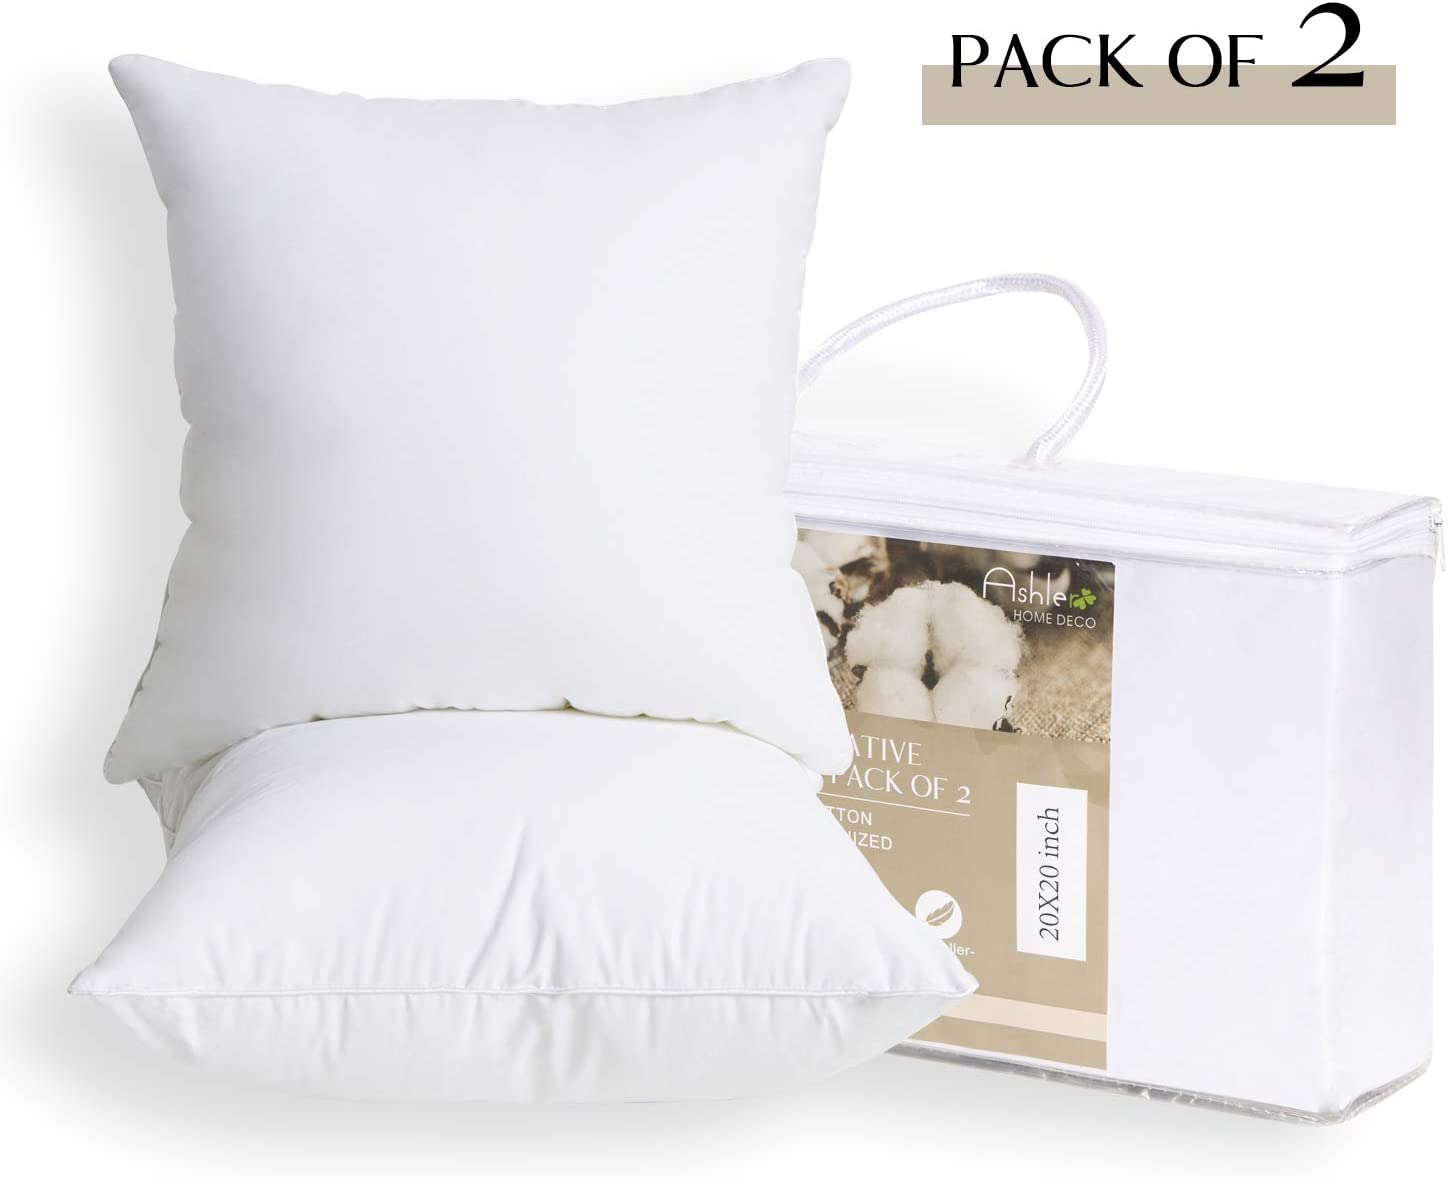 Ashler Set of 2 Throw Pillow Inserts with Pure Cotton Cover Soft Supportive Square Form Hypoallergenic 12 x 20 Inches